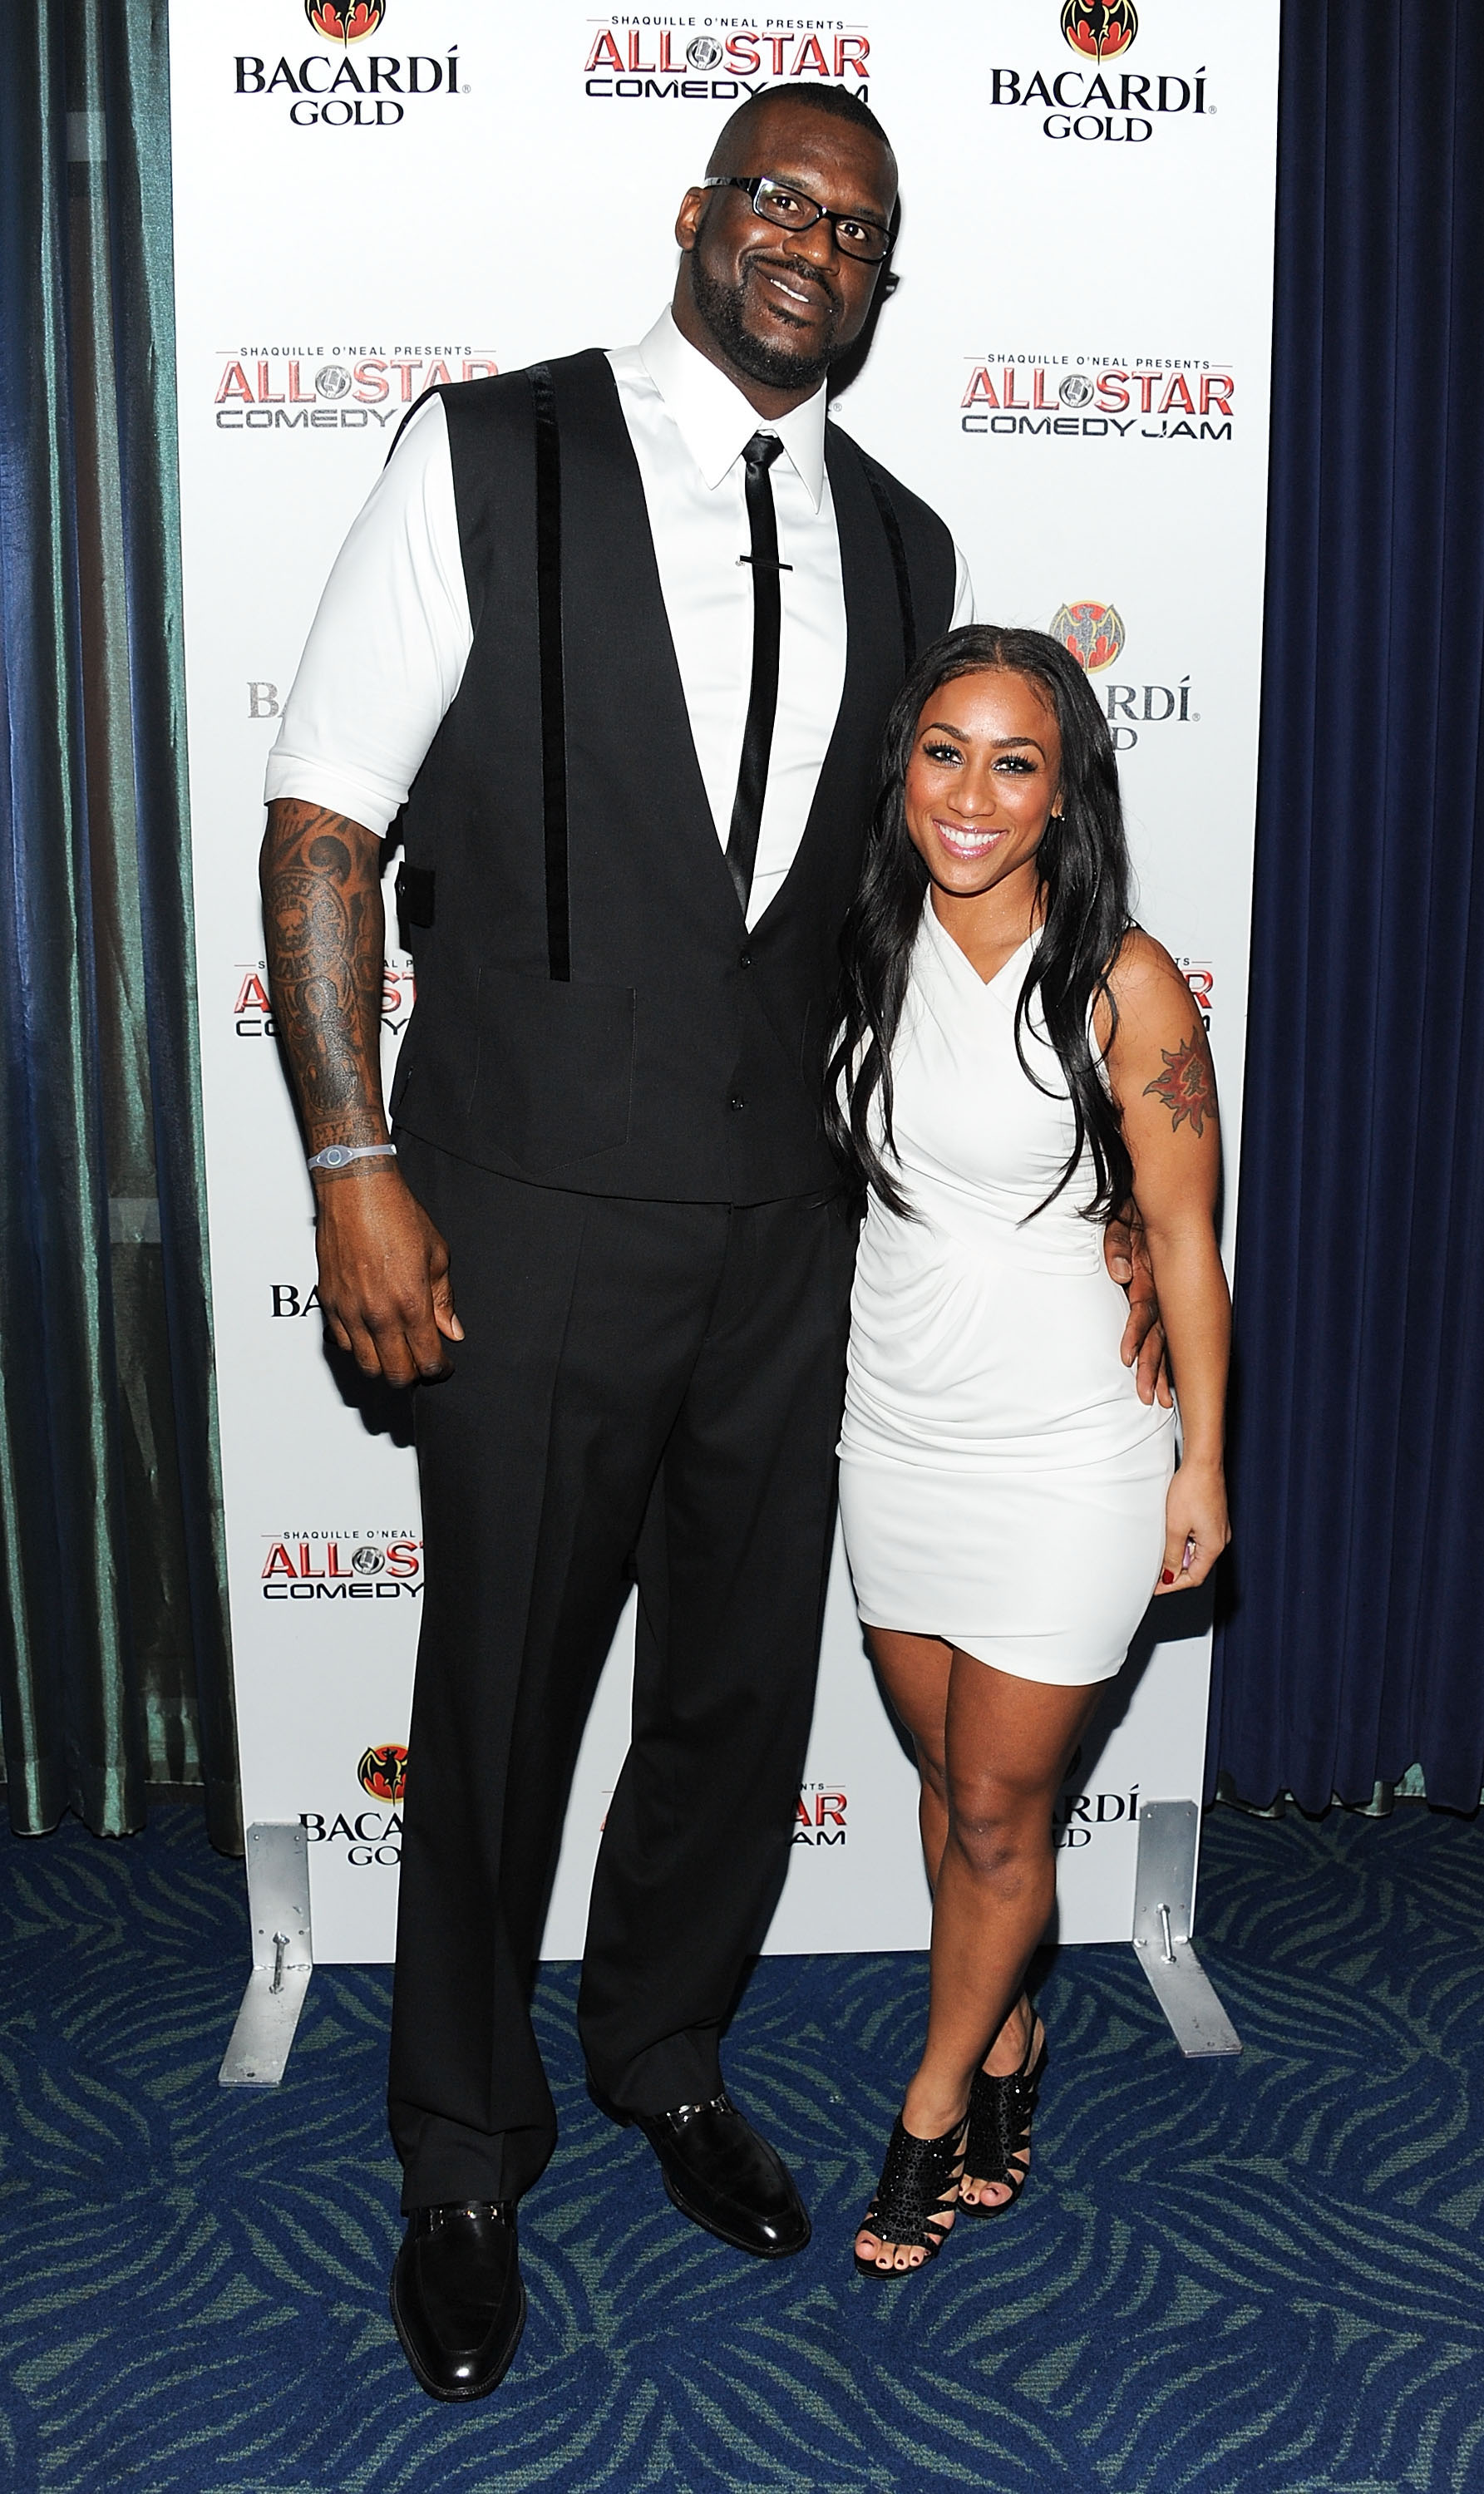 Shaquille ONeal and Nicole Alexander | Height Difference